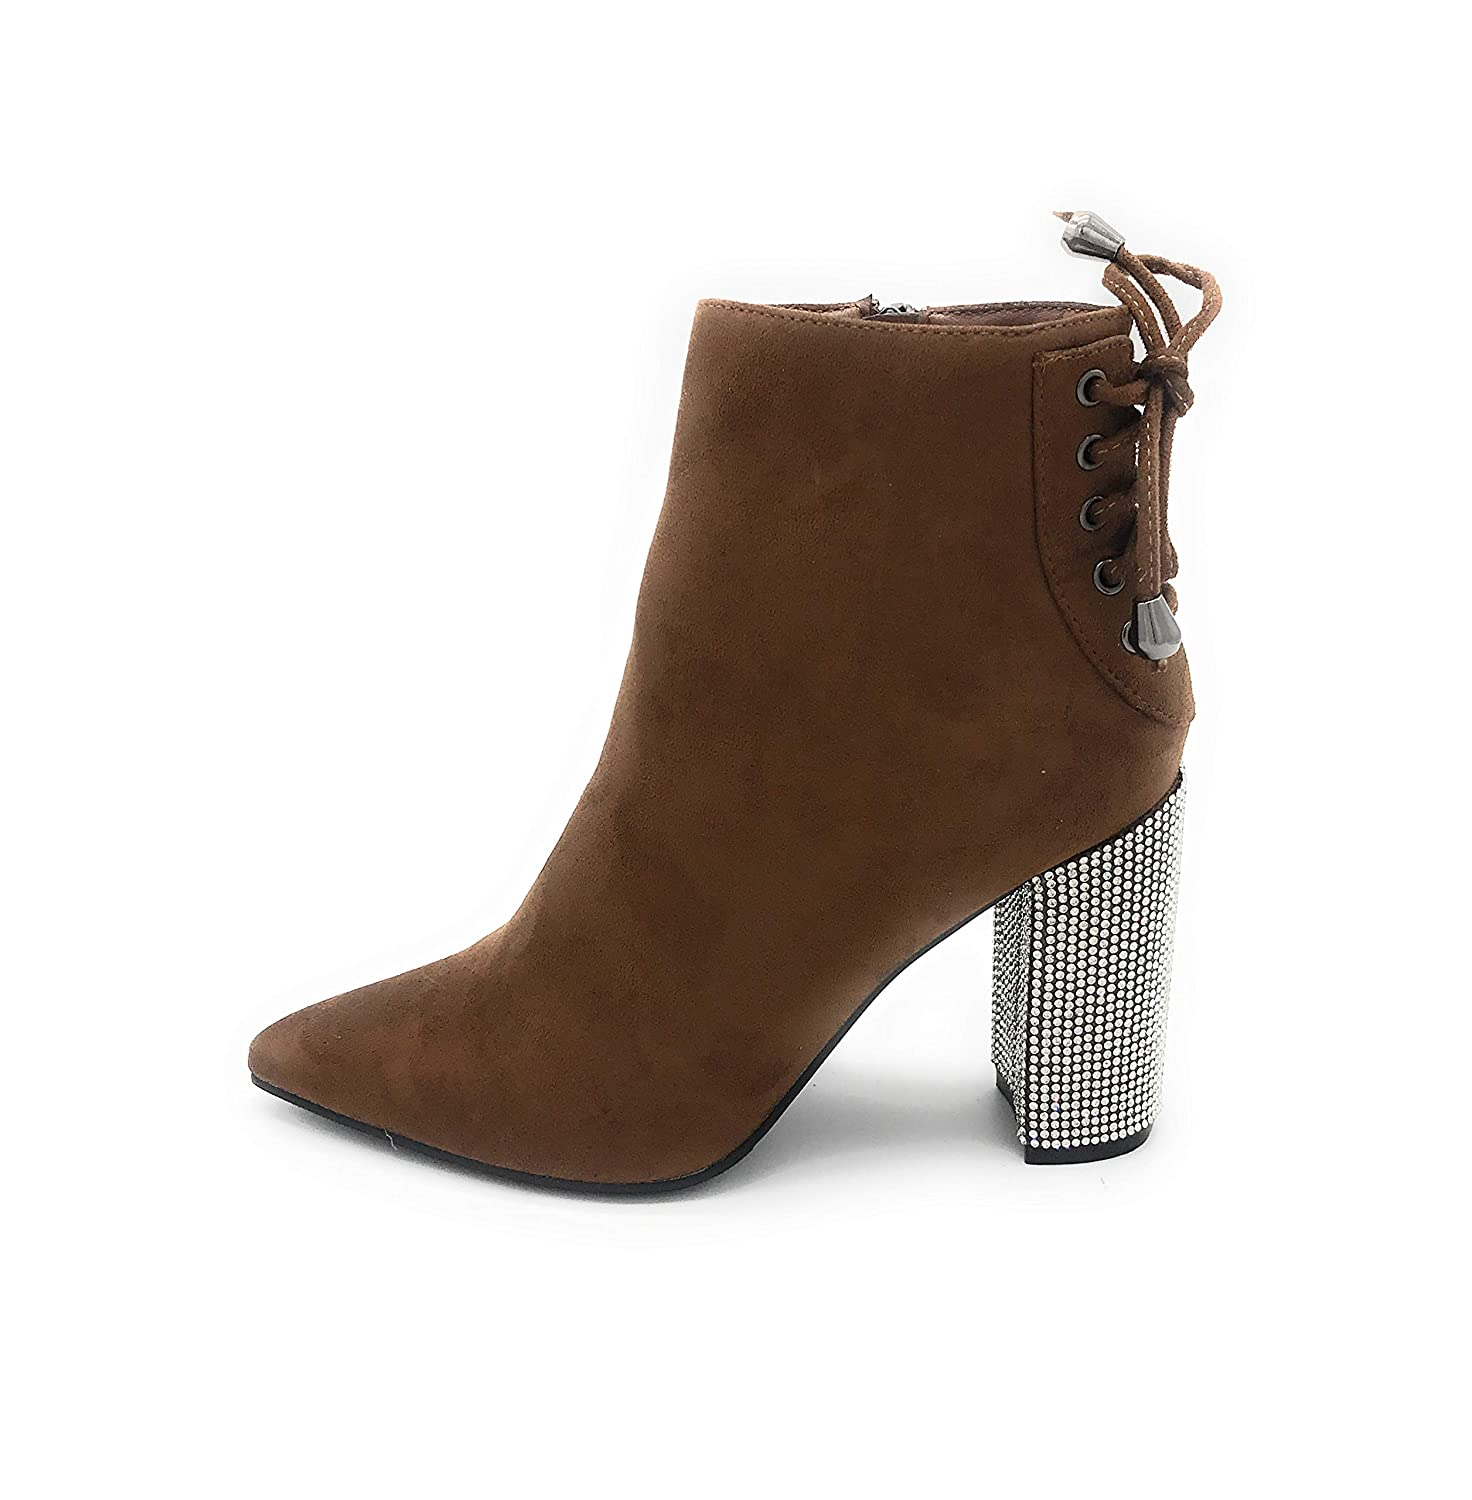 01camel J Mark EASY21 Women Fashion Ankle Rhinestone Boots Casual Short Bootie shoes